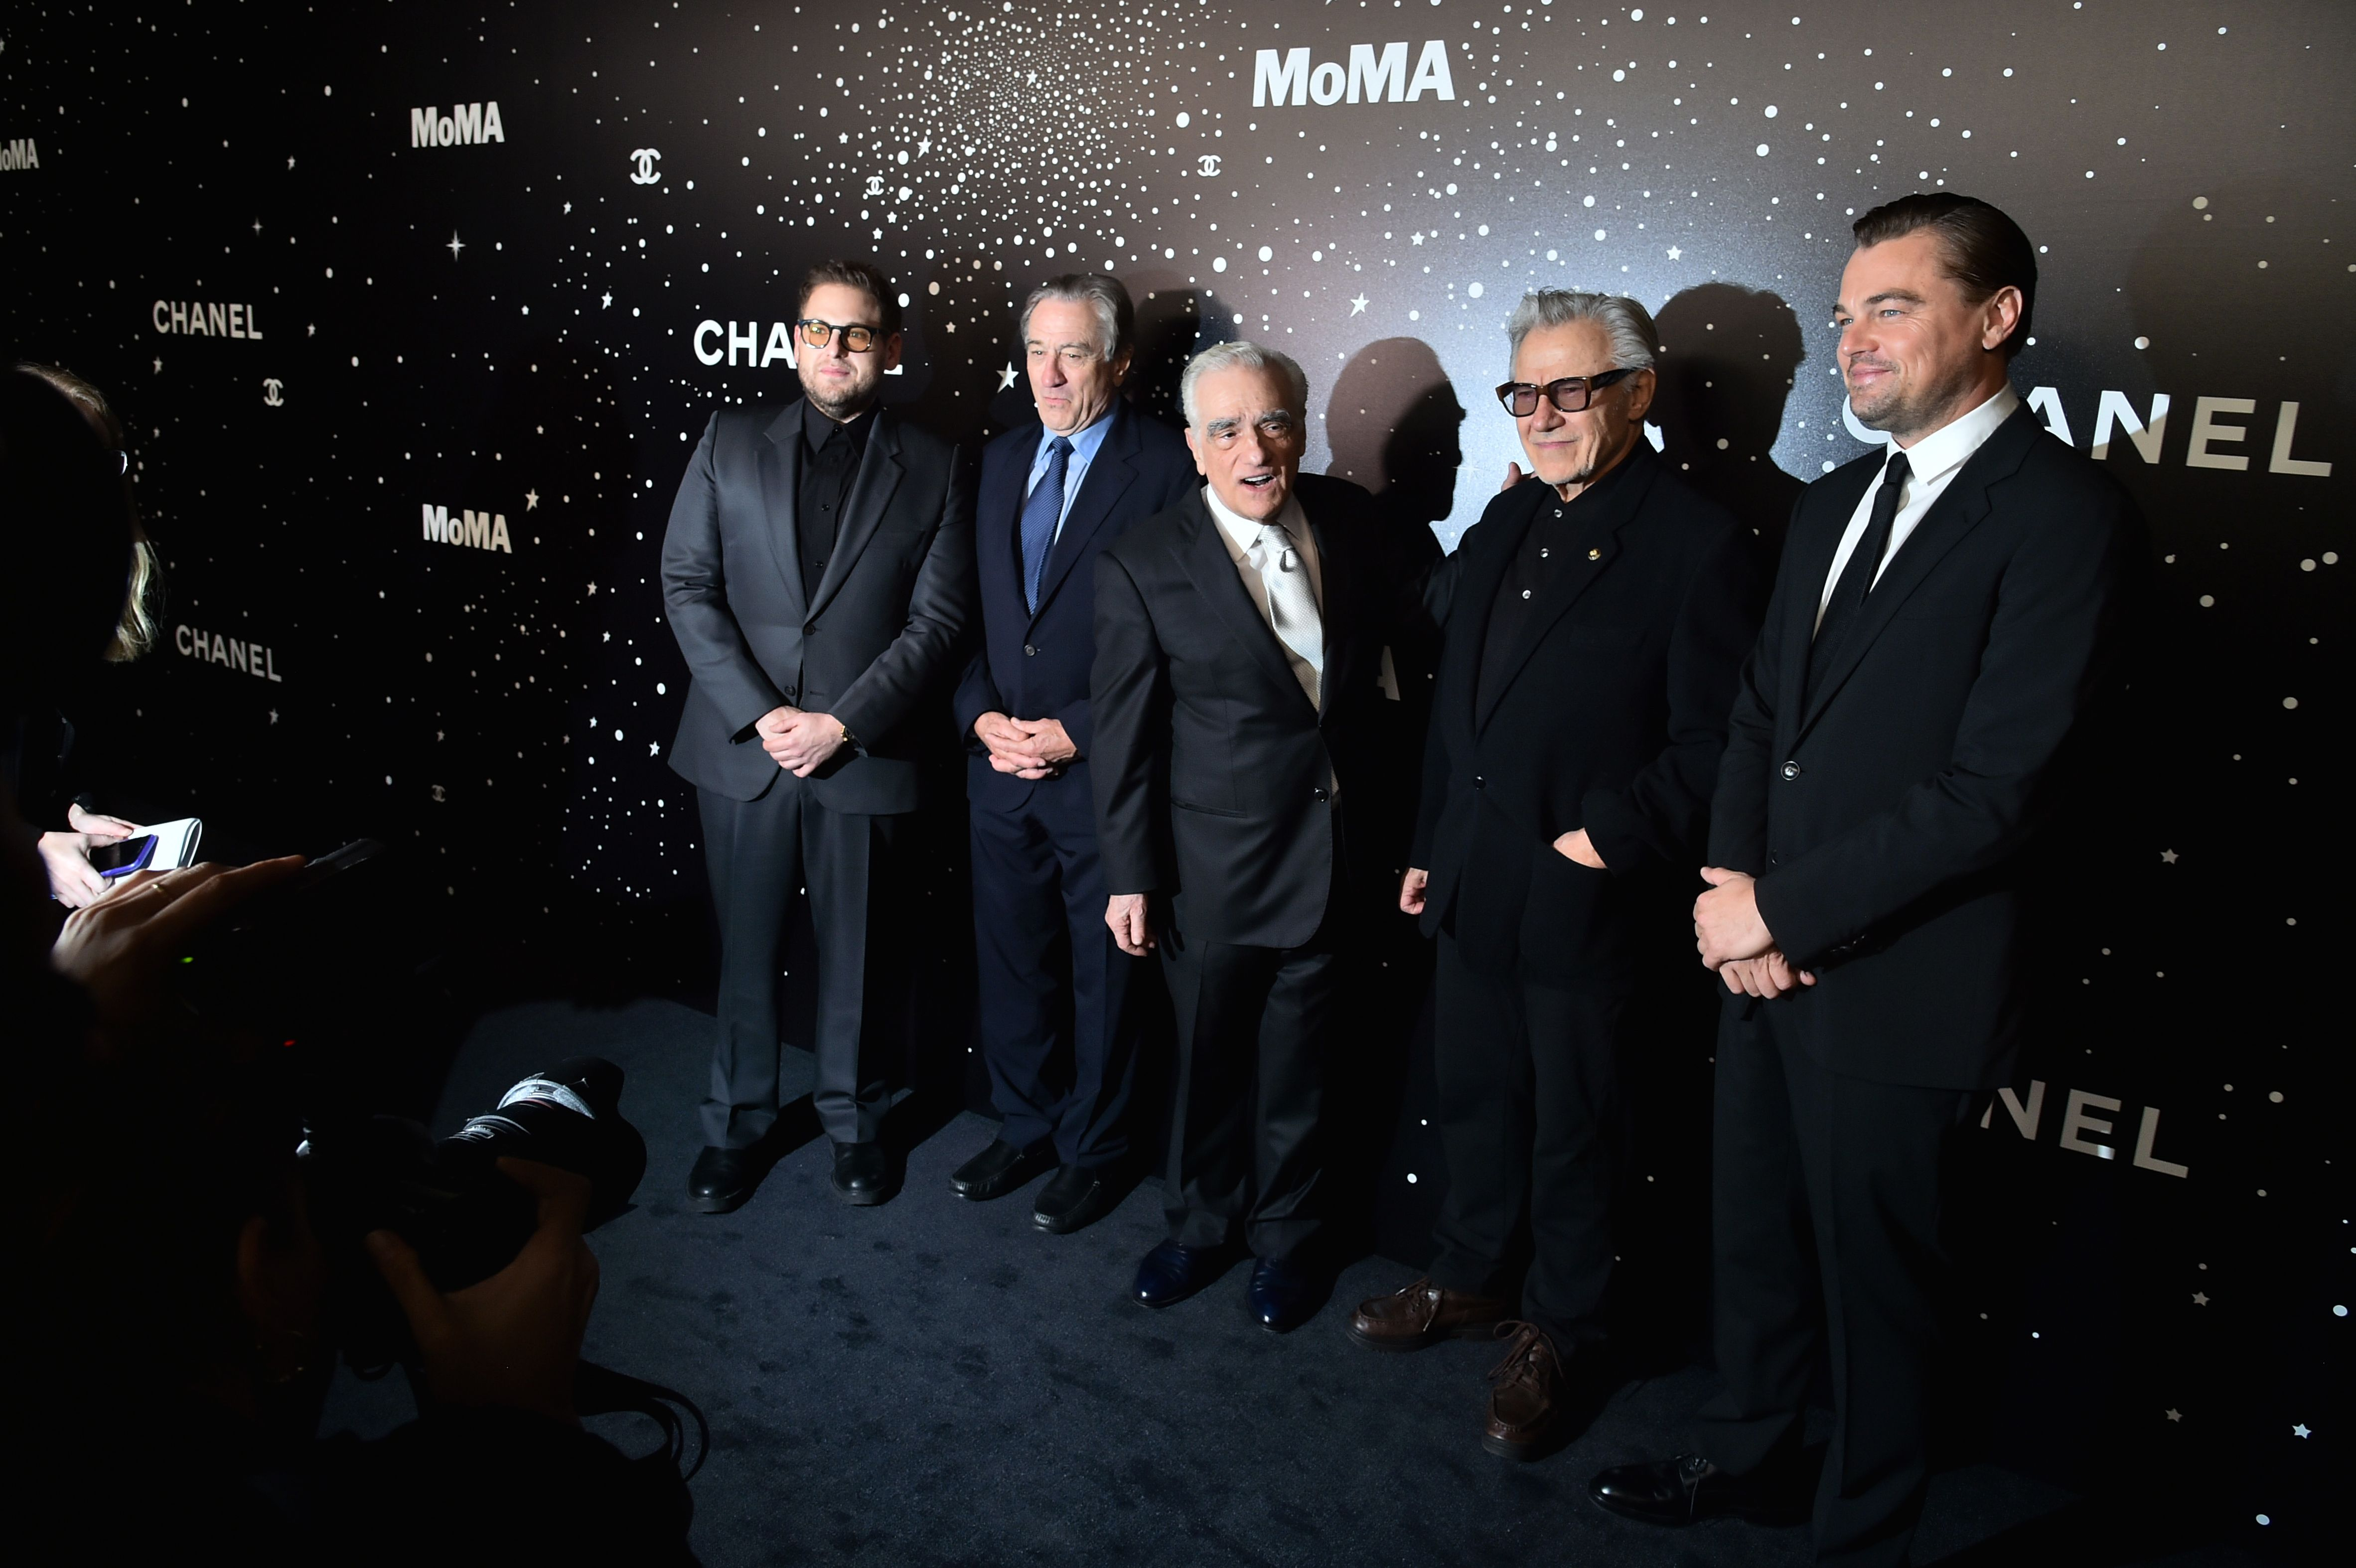 Jonah Hill, Robert DeNiro, Martin Scorsese, Harvey Keitel and Leonardo DiCaprioMuseum of Modern Art's 11th Annual Film Benefit presented by Chanel, Arrivals, New York, USA - 19 Nov 2018